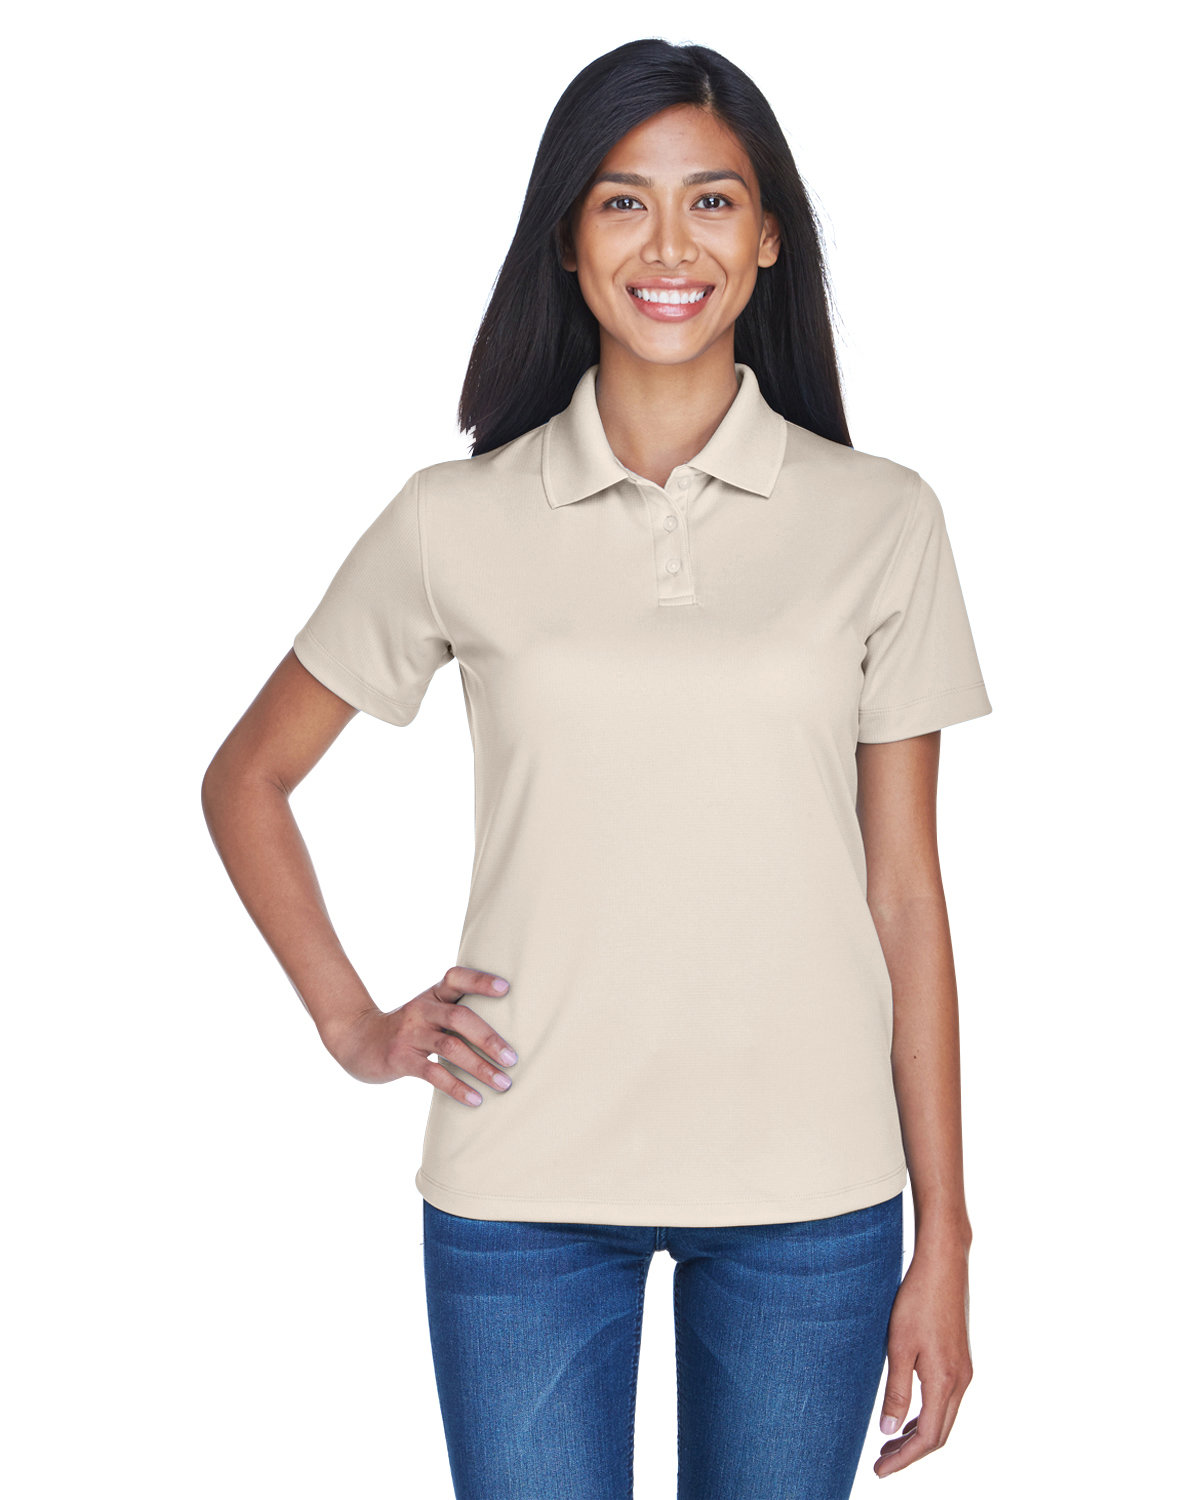 UltraClub Ladies' Cool & Dry Stain-Release Performance Polo STONE